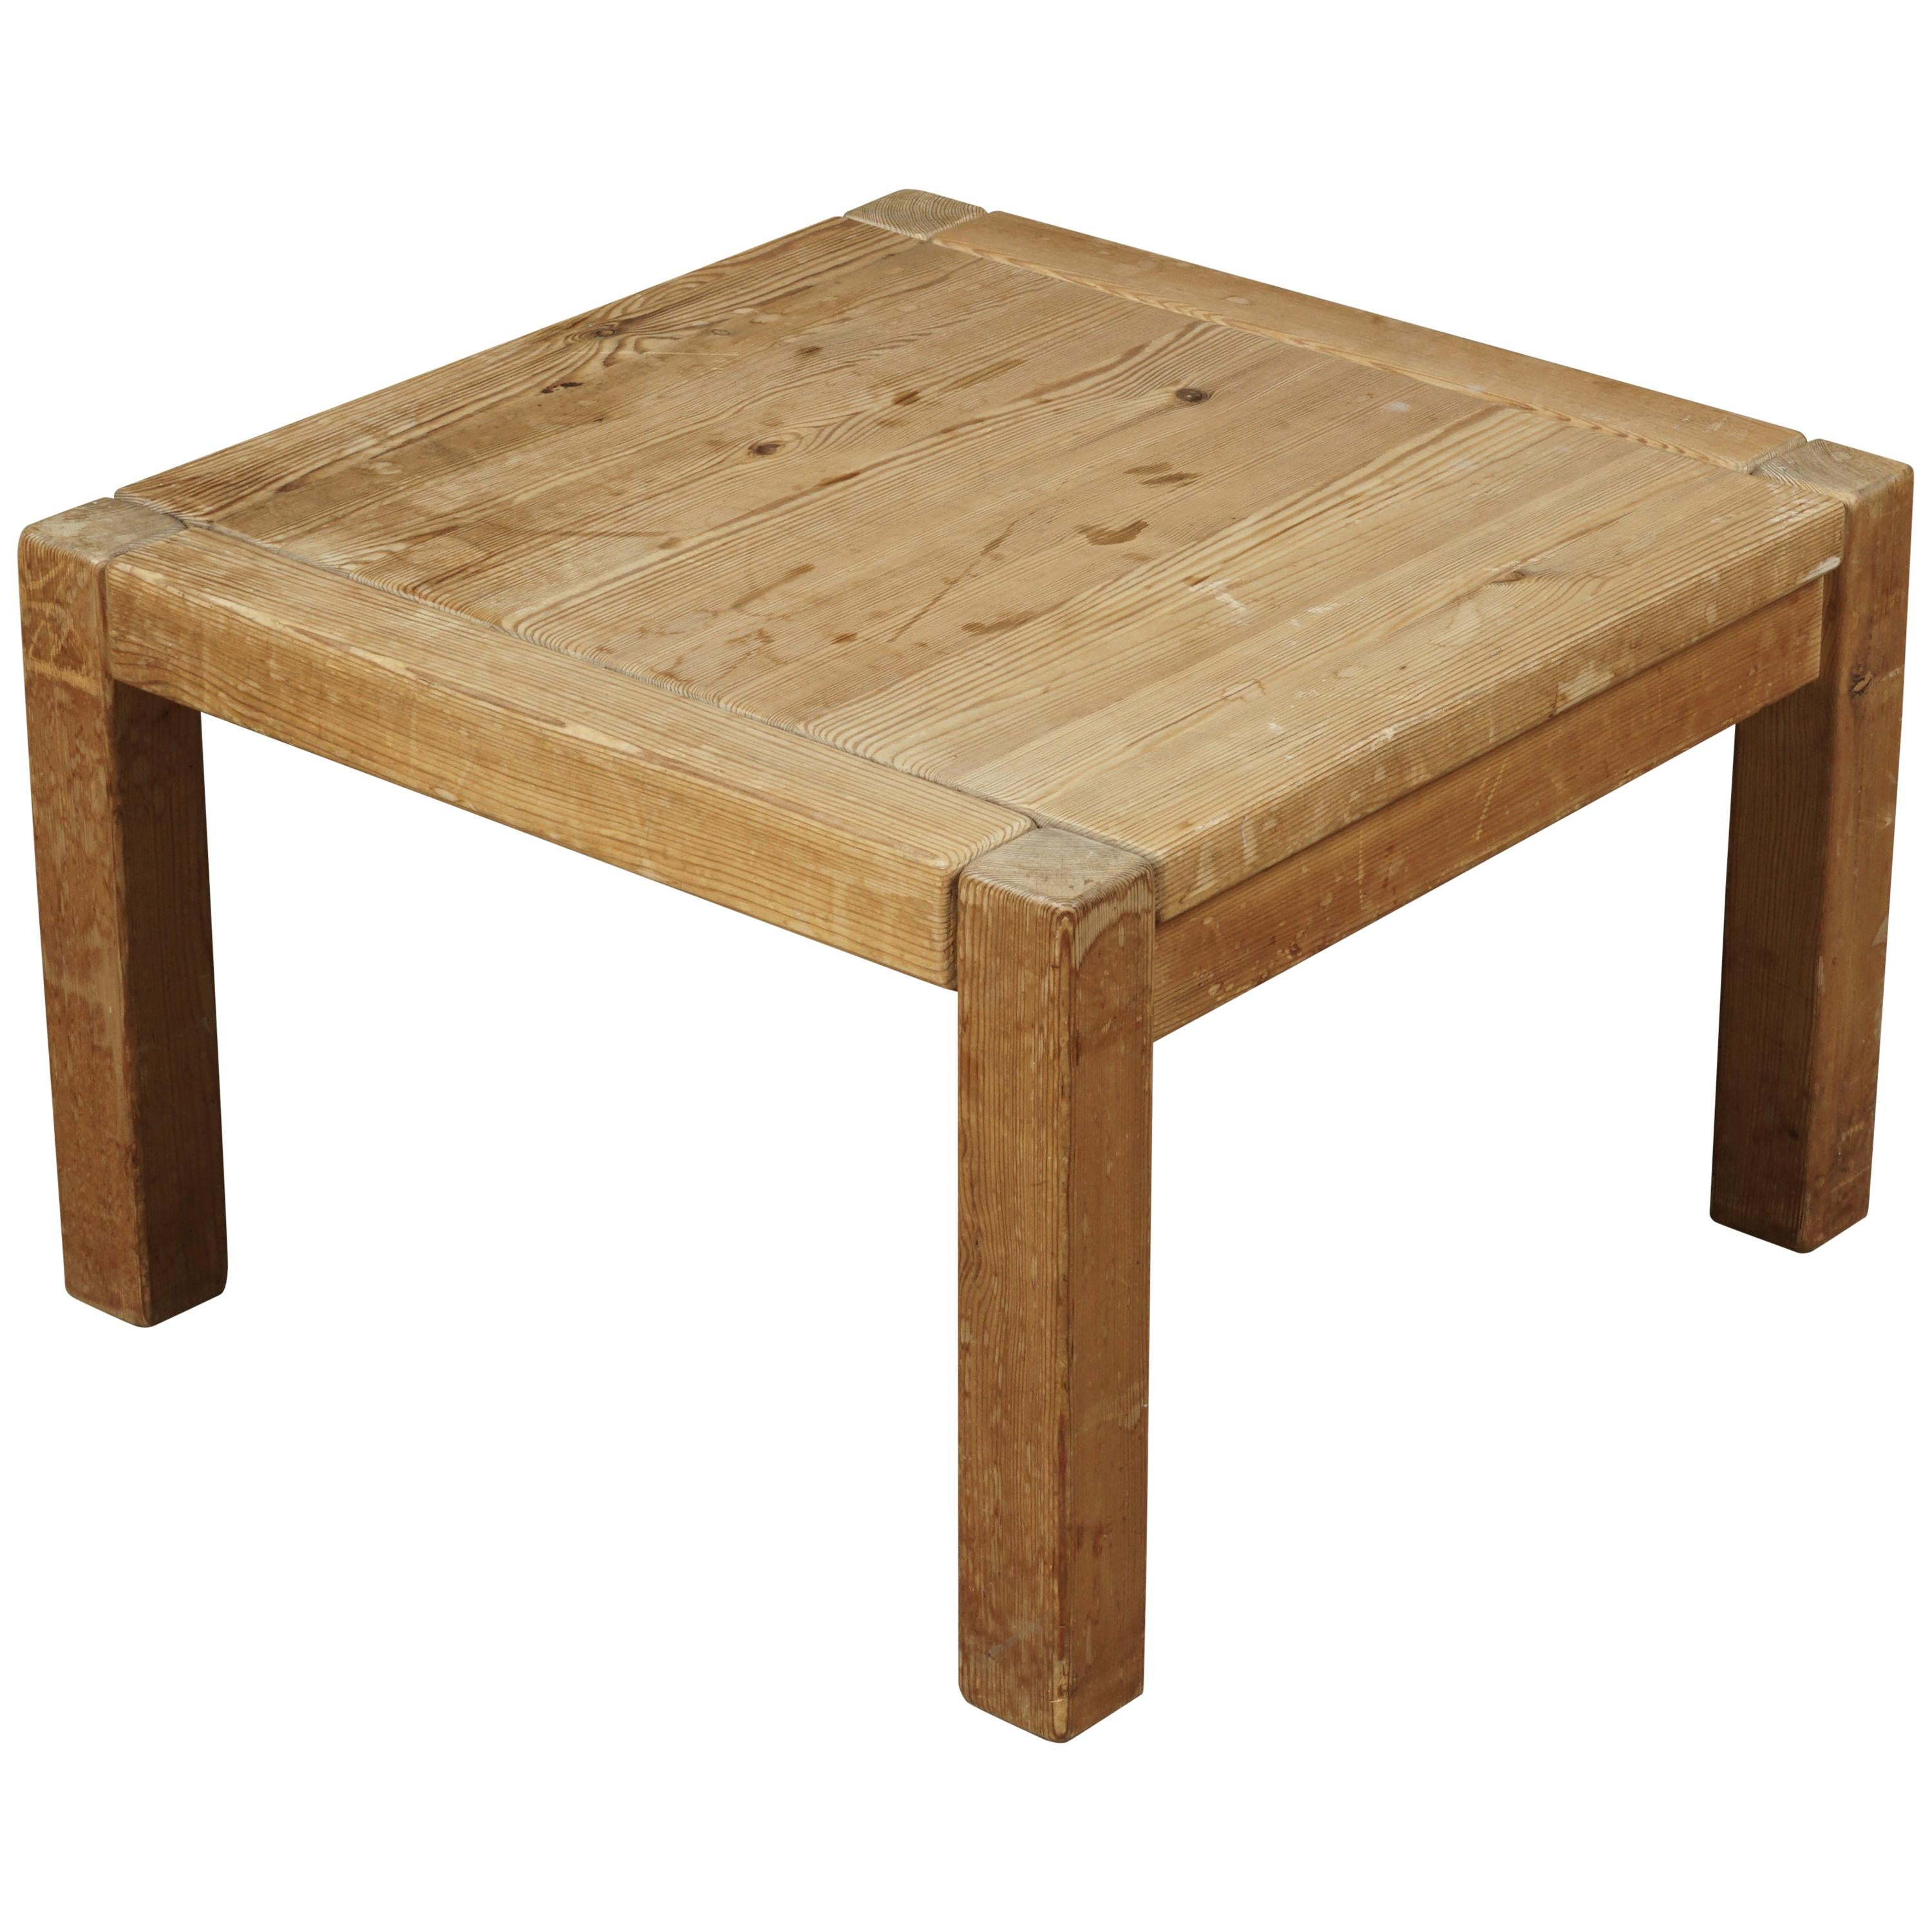 Astounding Small Pine Coffee Table From Netherlands Circa 1960 At 1Stdibs Unemploymentrelief Wooden Chair Designs For Living Room Unemploymentrelieforg